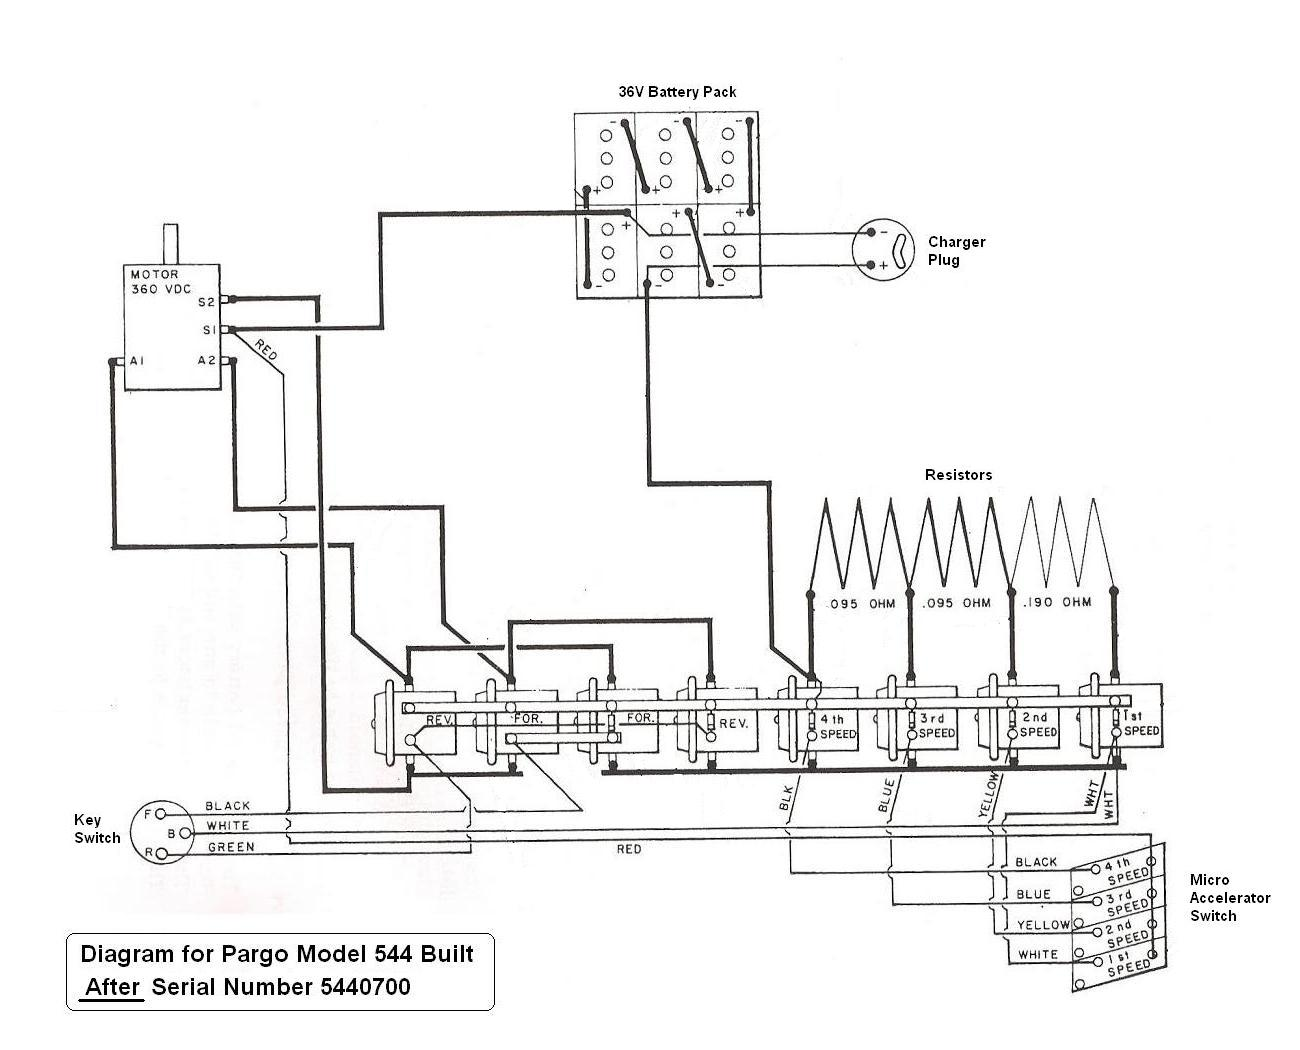 Pargo_After  Volt Gas Club Cart Wiring Diagram on 12 volt fuel gauge, 12 volt starter, 12 volt turn signals, 12 volt piston, 12 volt wiring symbols, 5.1 surround sound setup diagram, 12 volt wiring junction box, 24 volt system diagram, 12 volt wiring for rv, 12 volt wire, 12 volt fuse, 12 volt gauge wiring, 12 volt electrical wiring, 12 volt wiring supplies, 12 volt series wiring, 12 volt wiring system, 12 volt steering, 12 volt boat wiring, 12 volt assembly, 12 volt wiring for cabins,